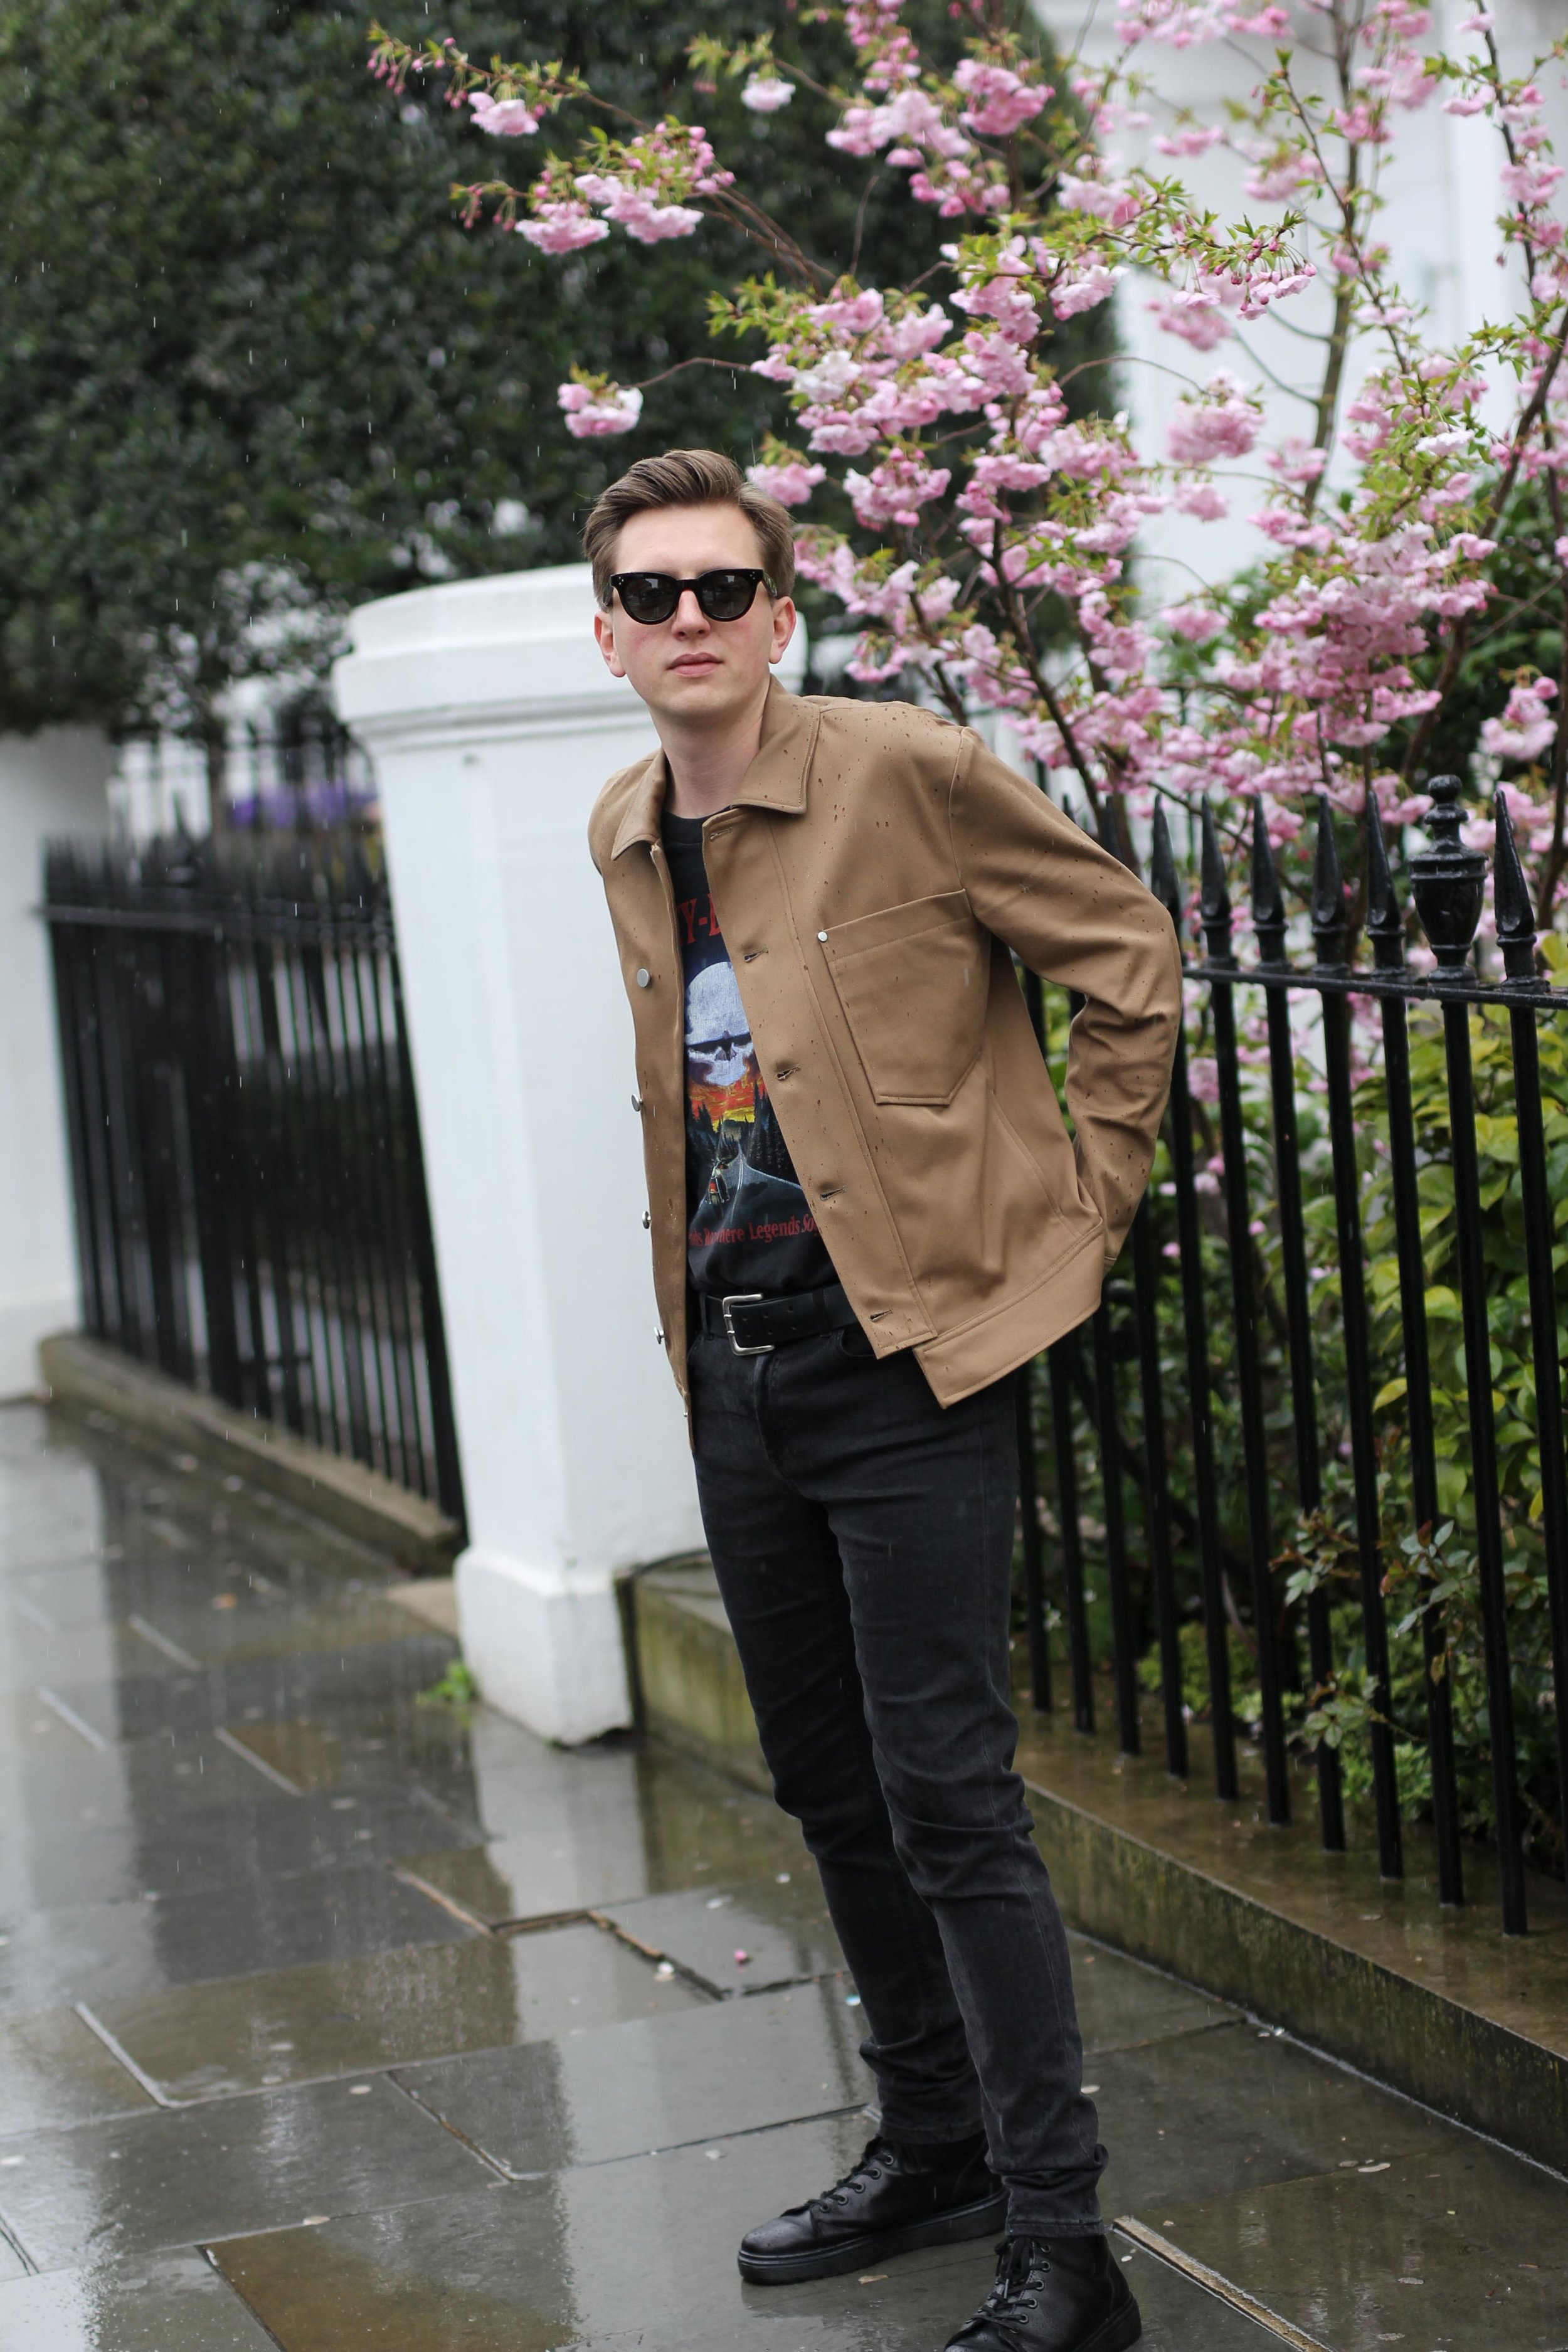 crash_baggage_london_travel_ootd_mensfashion_bones_and_bruises_chelsea